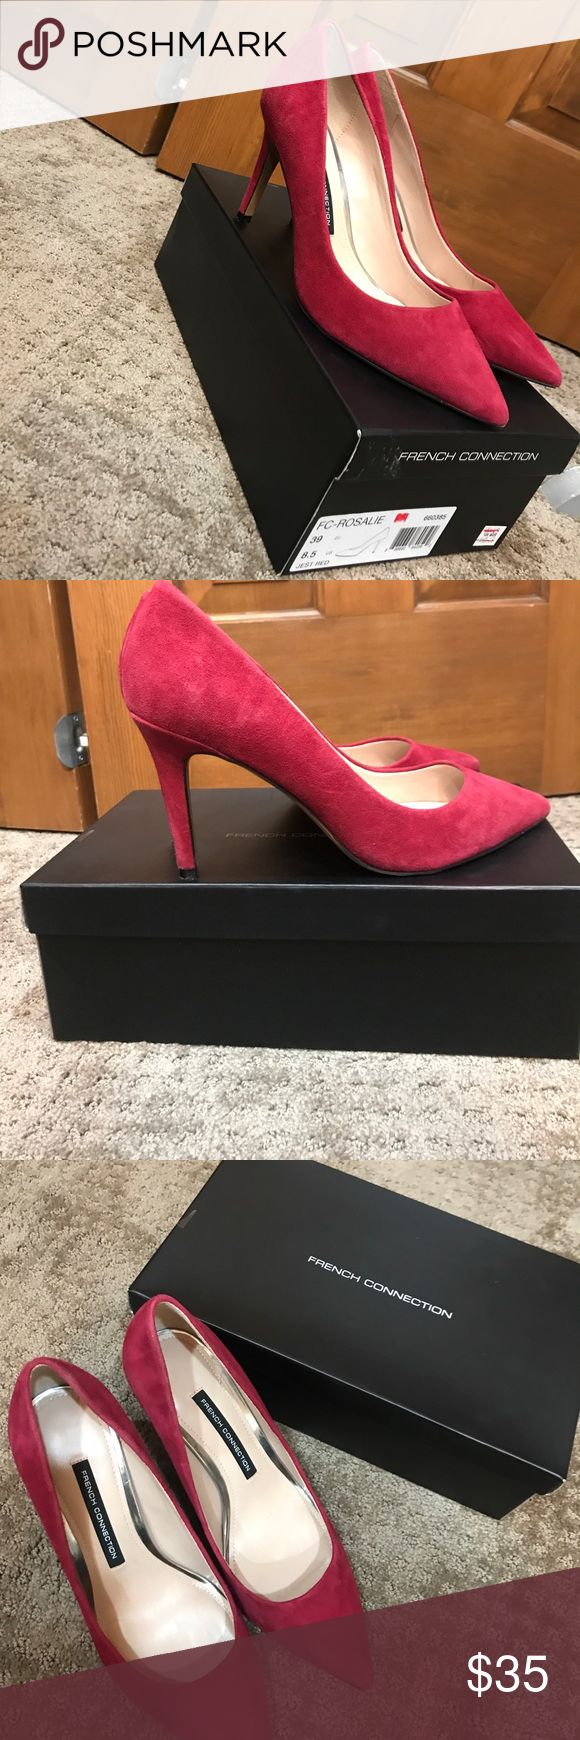 French Connection suede red pumps Sz 8.5 (39) Red Heels (ONLY WORN ONCE!!!) French Connection Shoes Heels